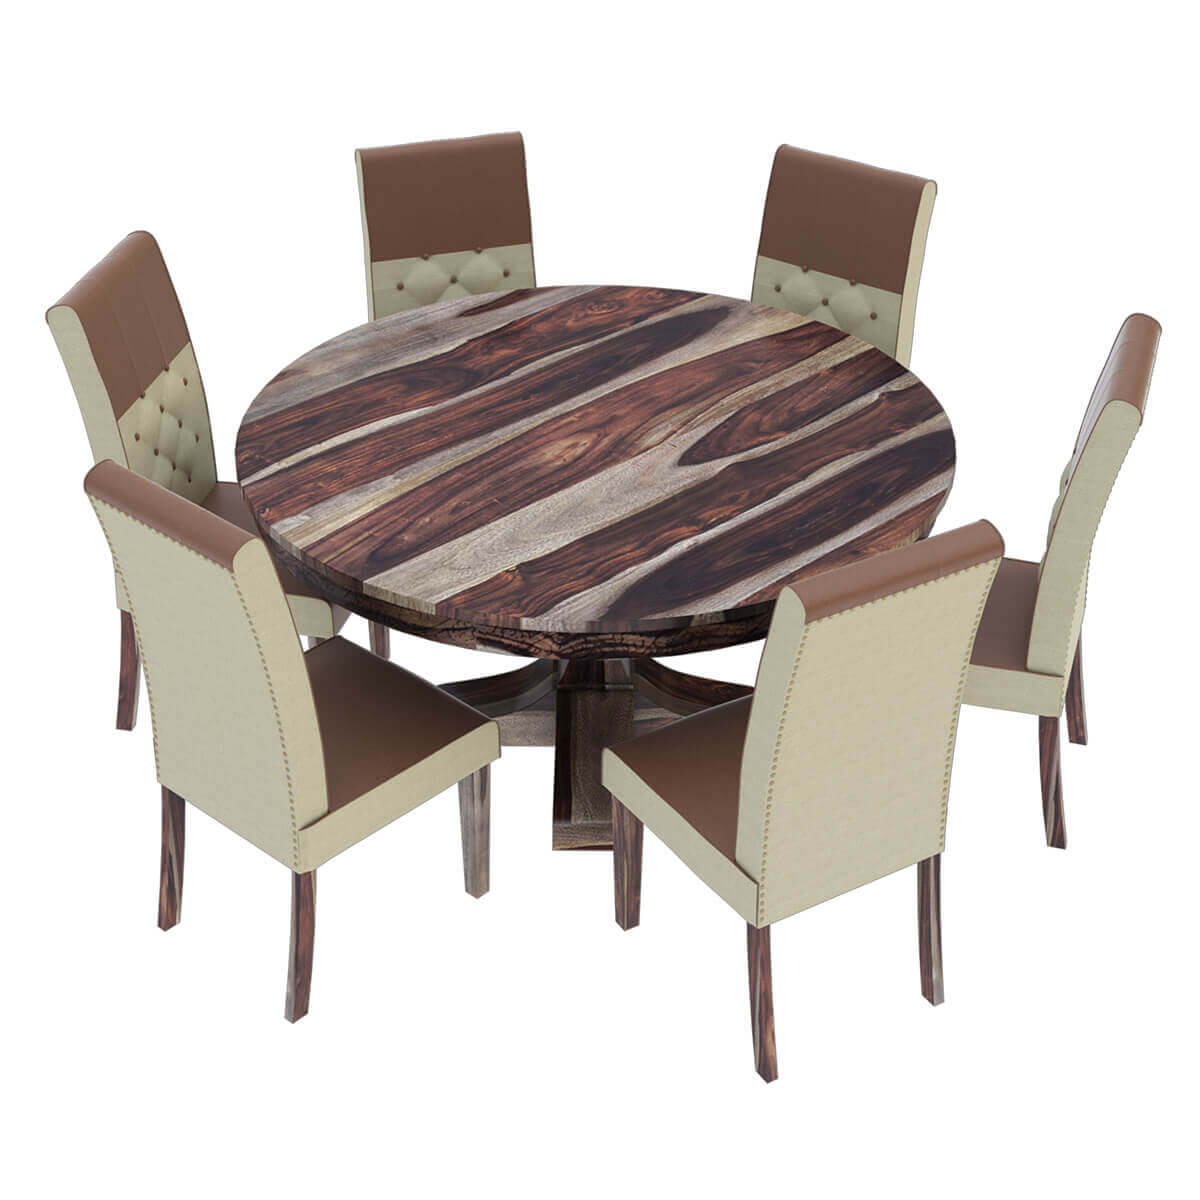 Round Dining Table And Chairs Hosford Handcrafted Solid Wood Round Dining Table And 6